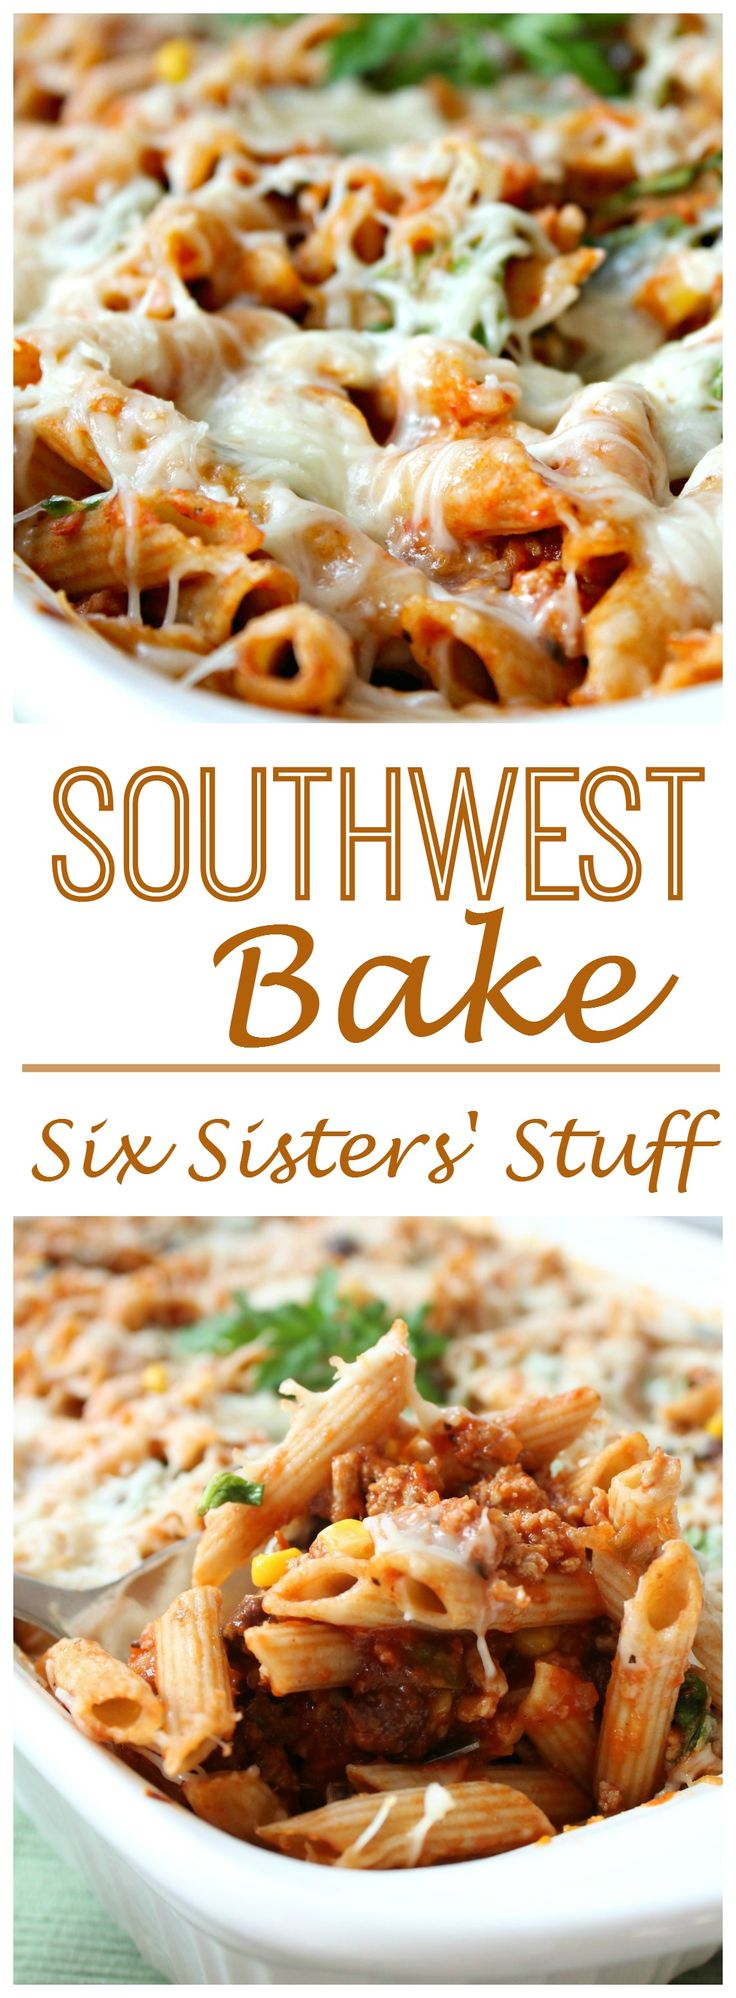 Southwest Pasta Bake on Sixsistersstuff.com - Great Freezer Meal!